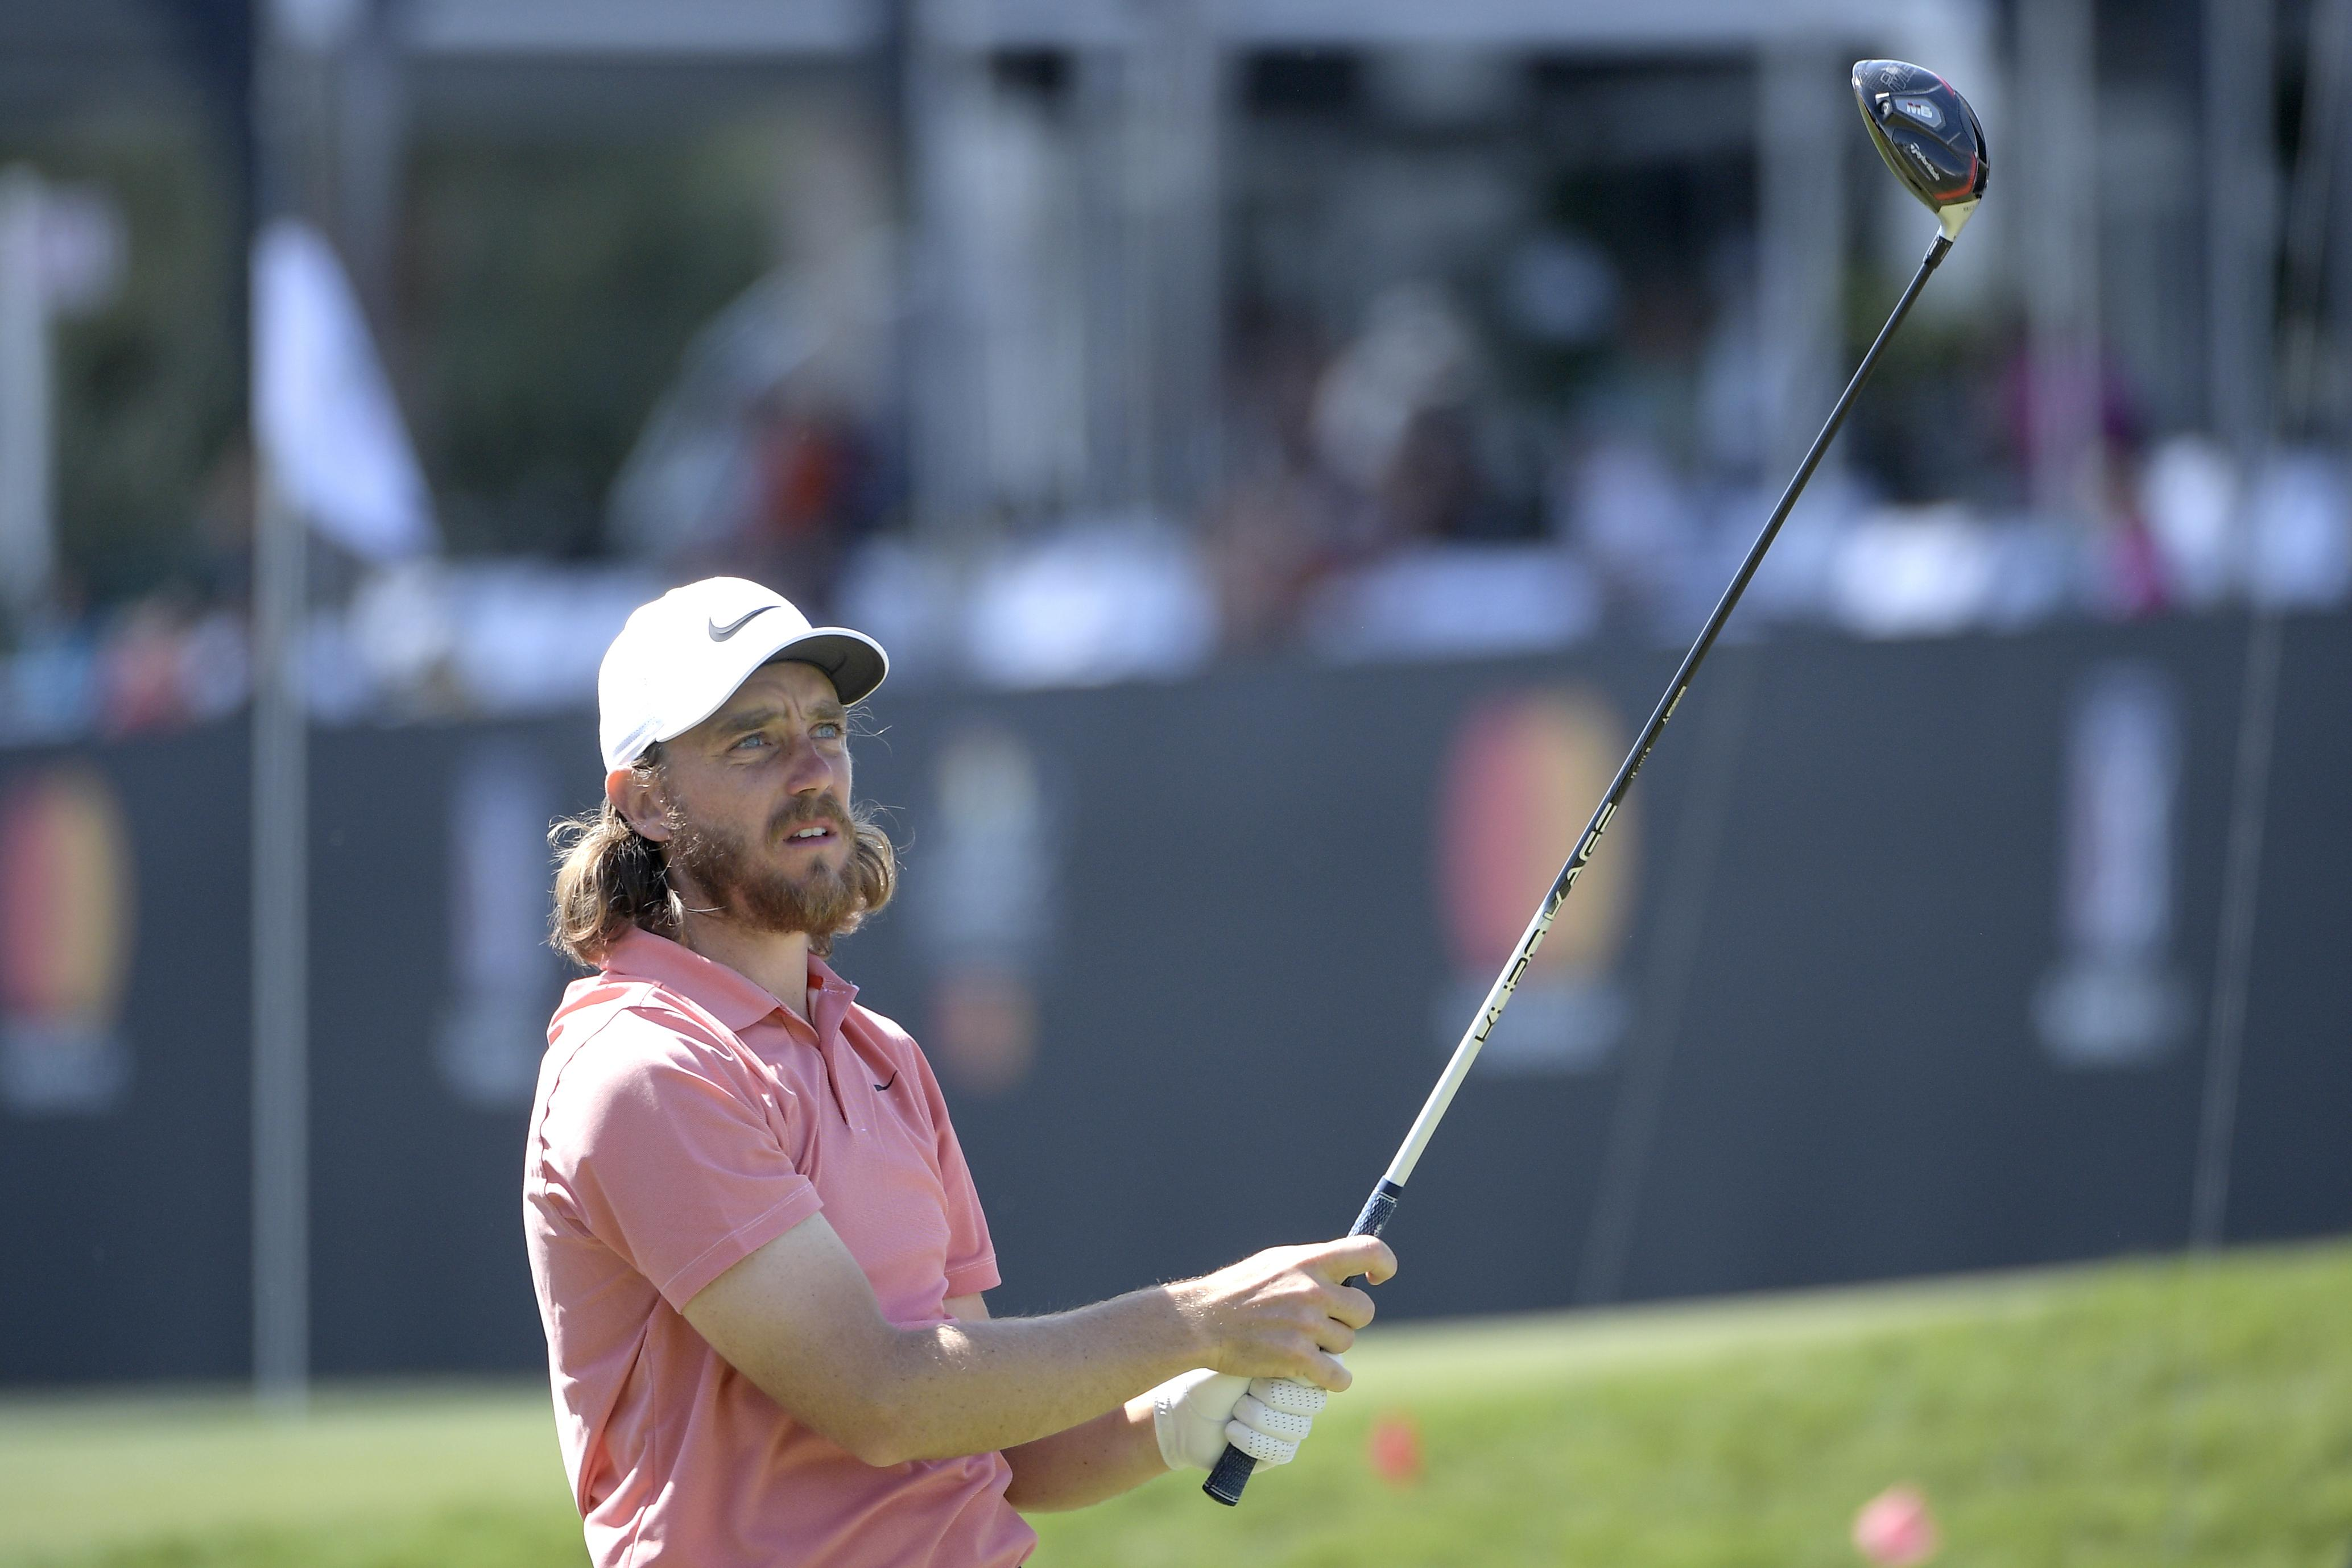 Tommy Fleetwood, of England, watches his tee shot on the 18th hole during the